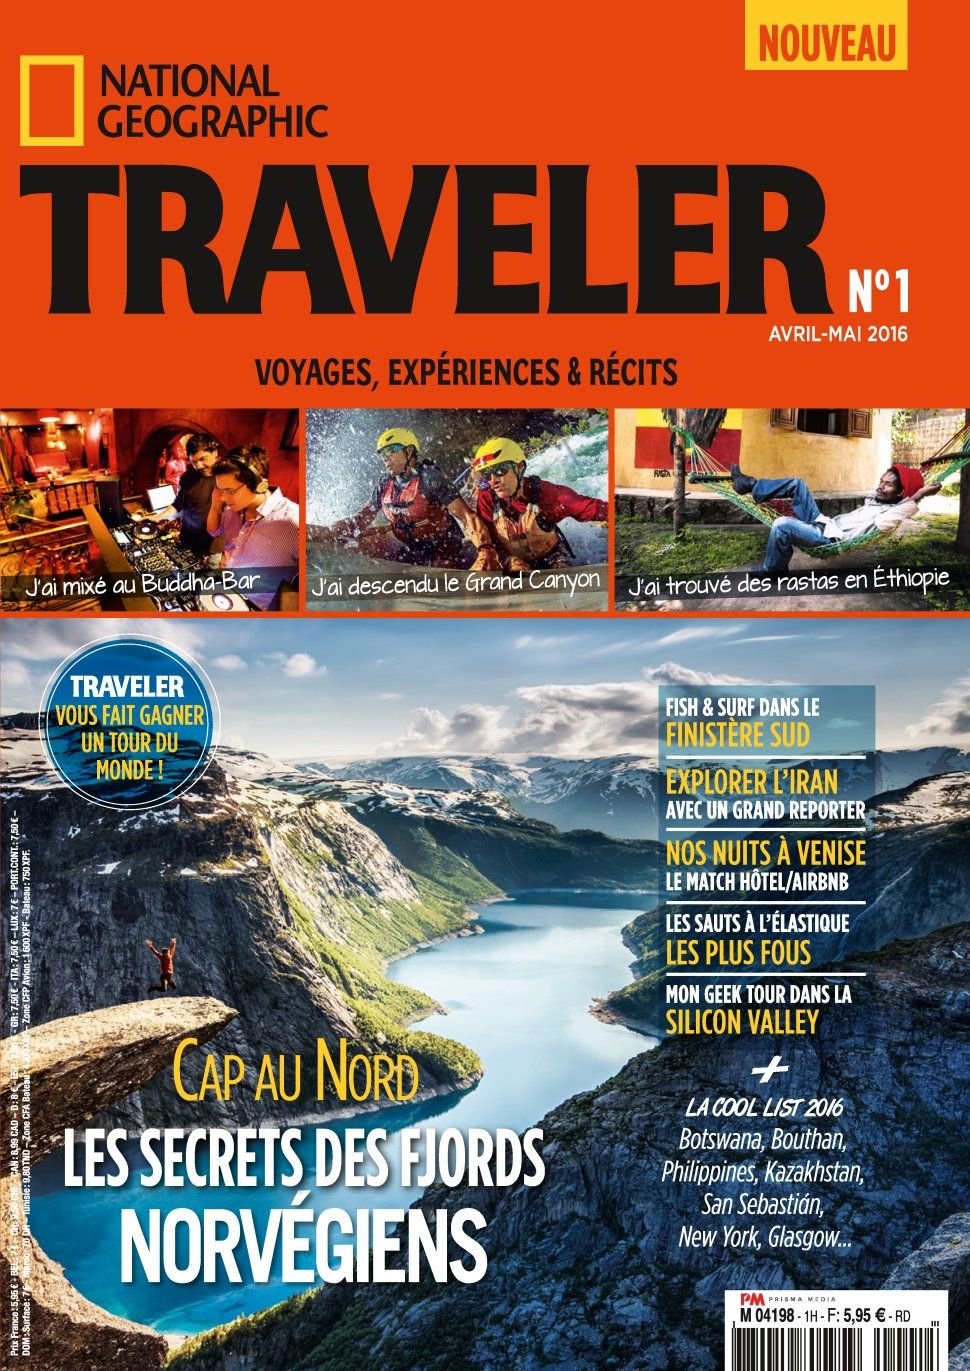 National Geographic Traveler 1 - Avril/Mai 2016